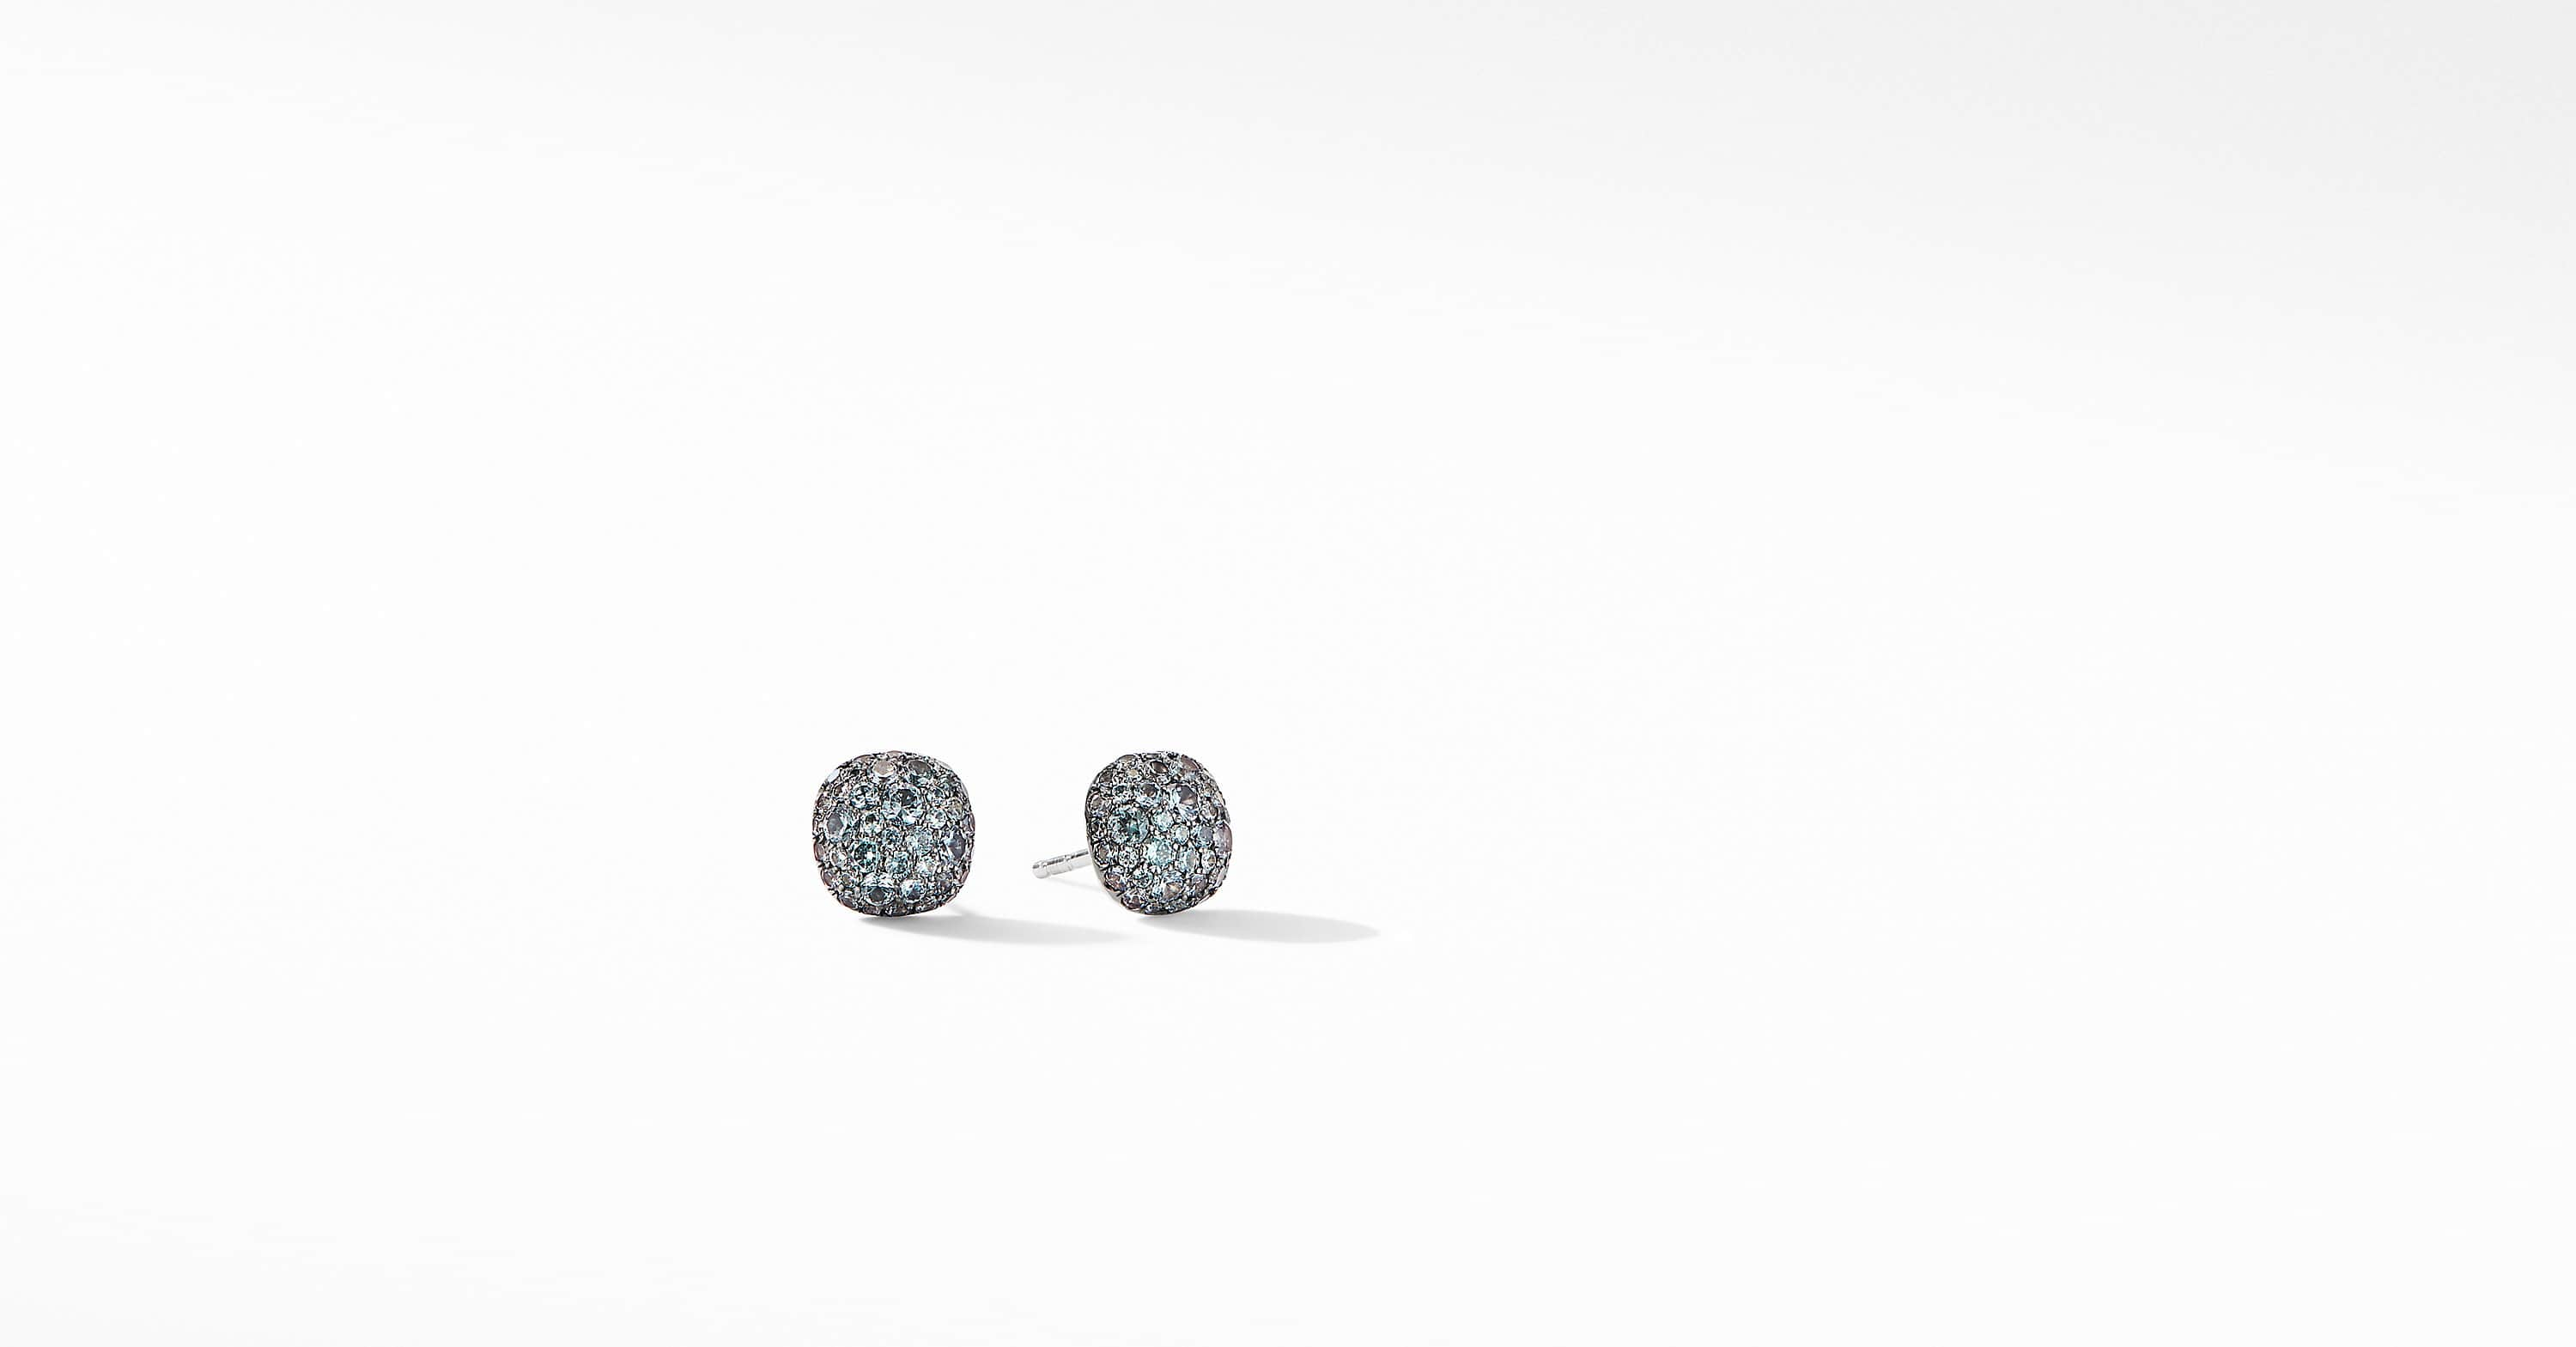 Cushion Stud Earrings in 18K White Gold